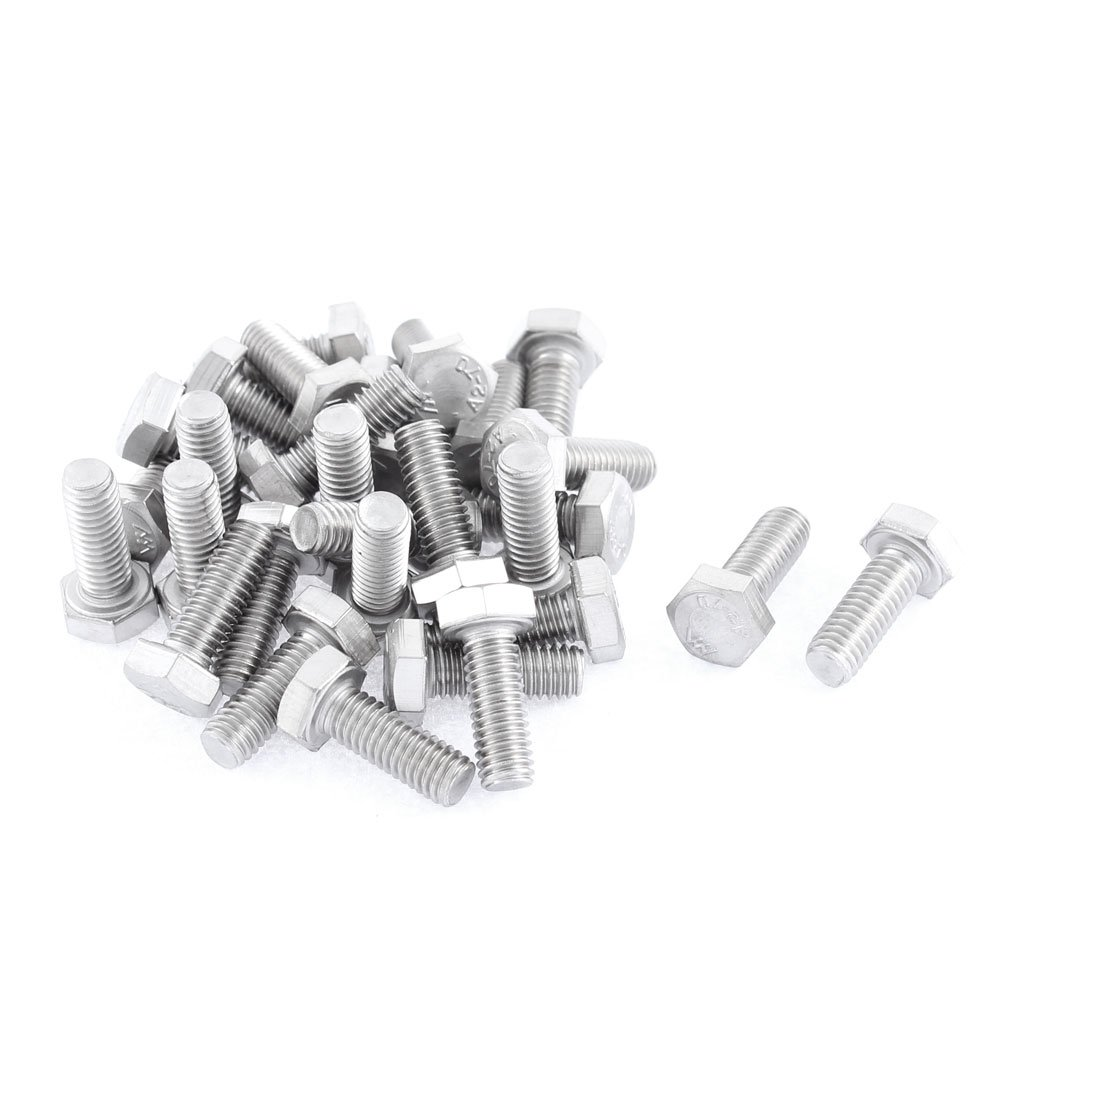 uxcell M6 x 16mm Fully Threaded Stainless Steel Hex Head Screw Bolt 30 Pcs